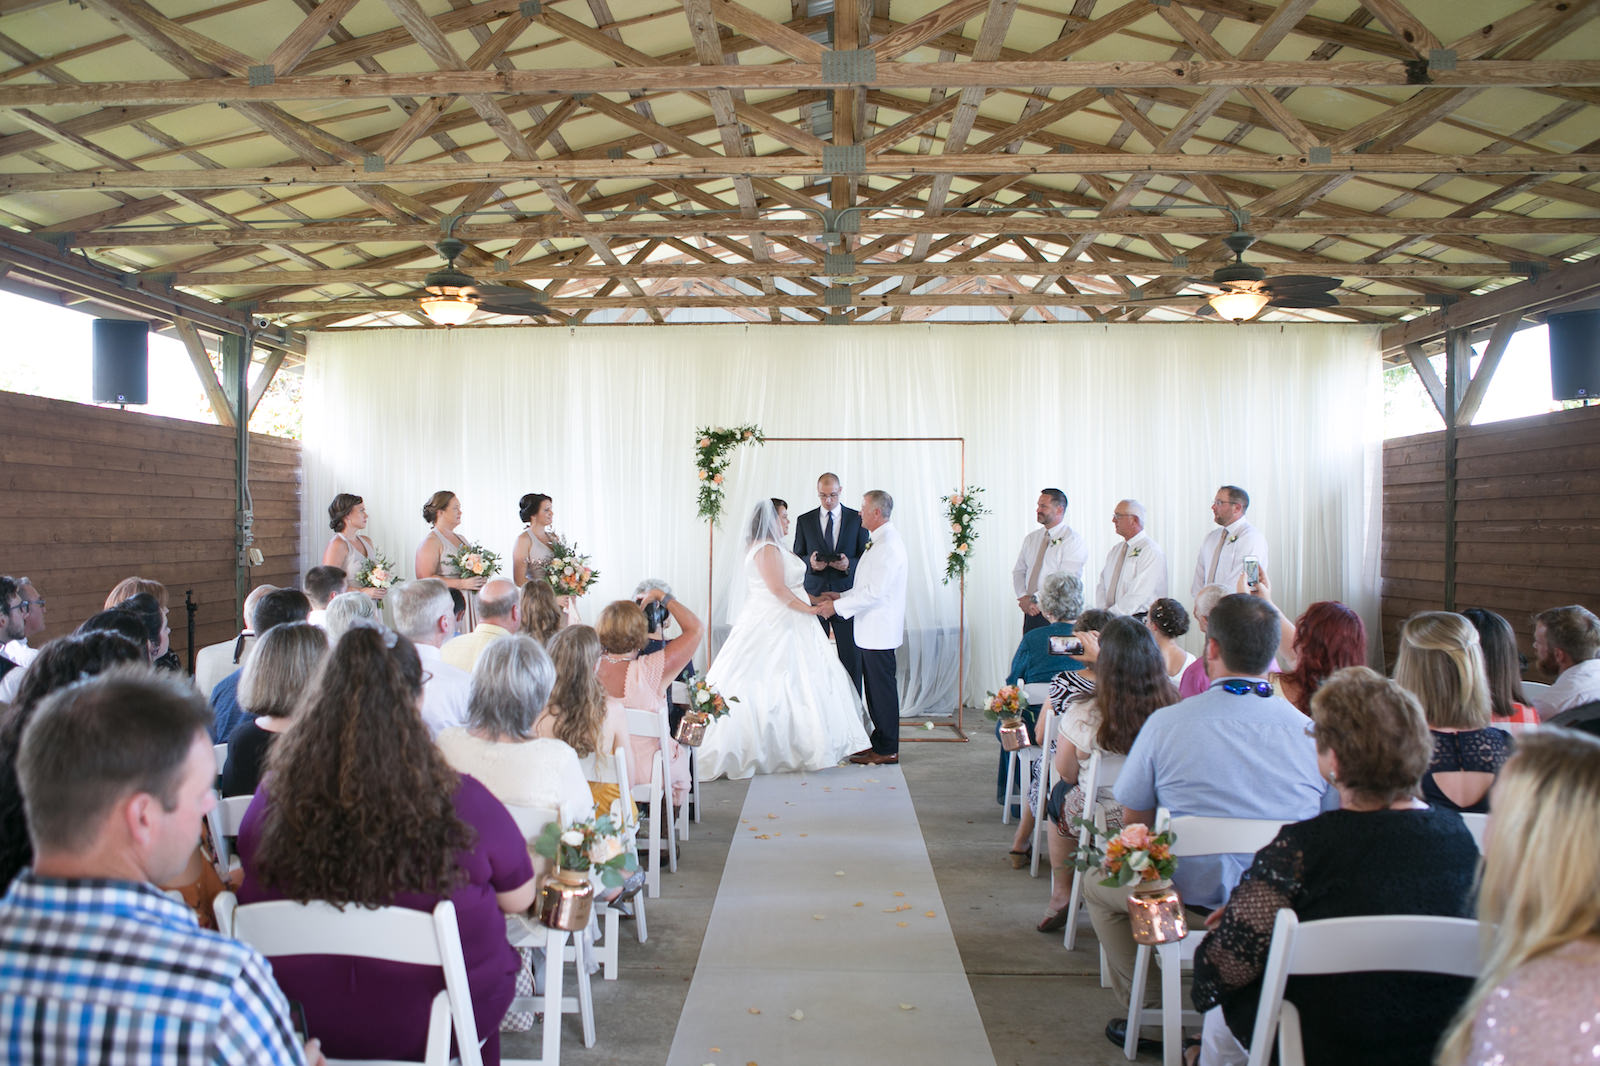 Tampa Bride and Groom Exchanging Wedding Vows During Ceremony Under Copper Arch | Wedding Photographer Carrie Wildes Photography | Pinellas Park shahnasarian hall | Wedding Dress Truly Forever Bridal